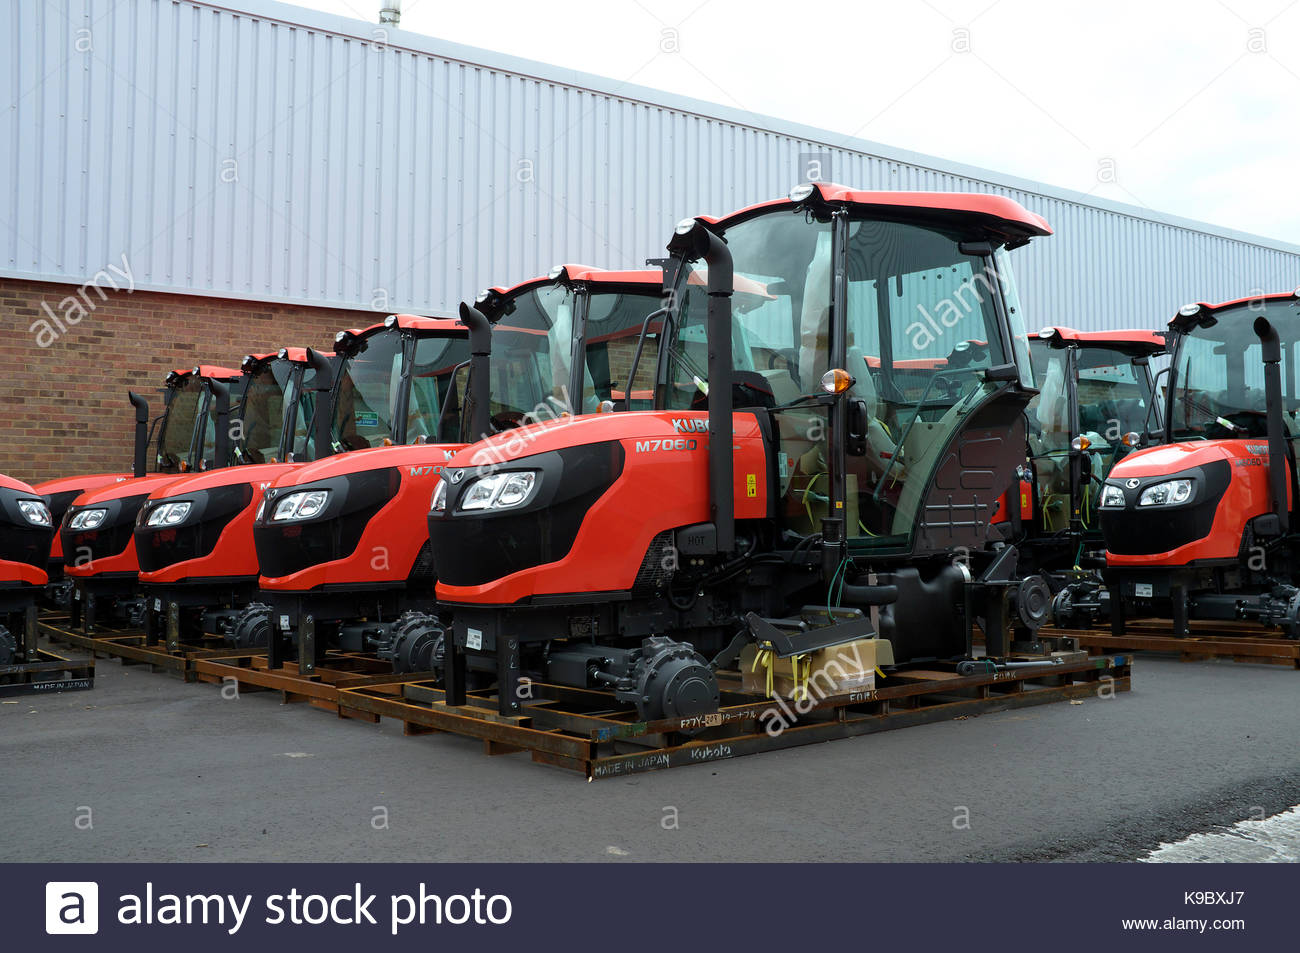 New Kubota tractors after import, awaiting preparation for distribution to customers. Thame, Oxfordshire, UK. - Stock Image